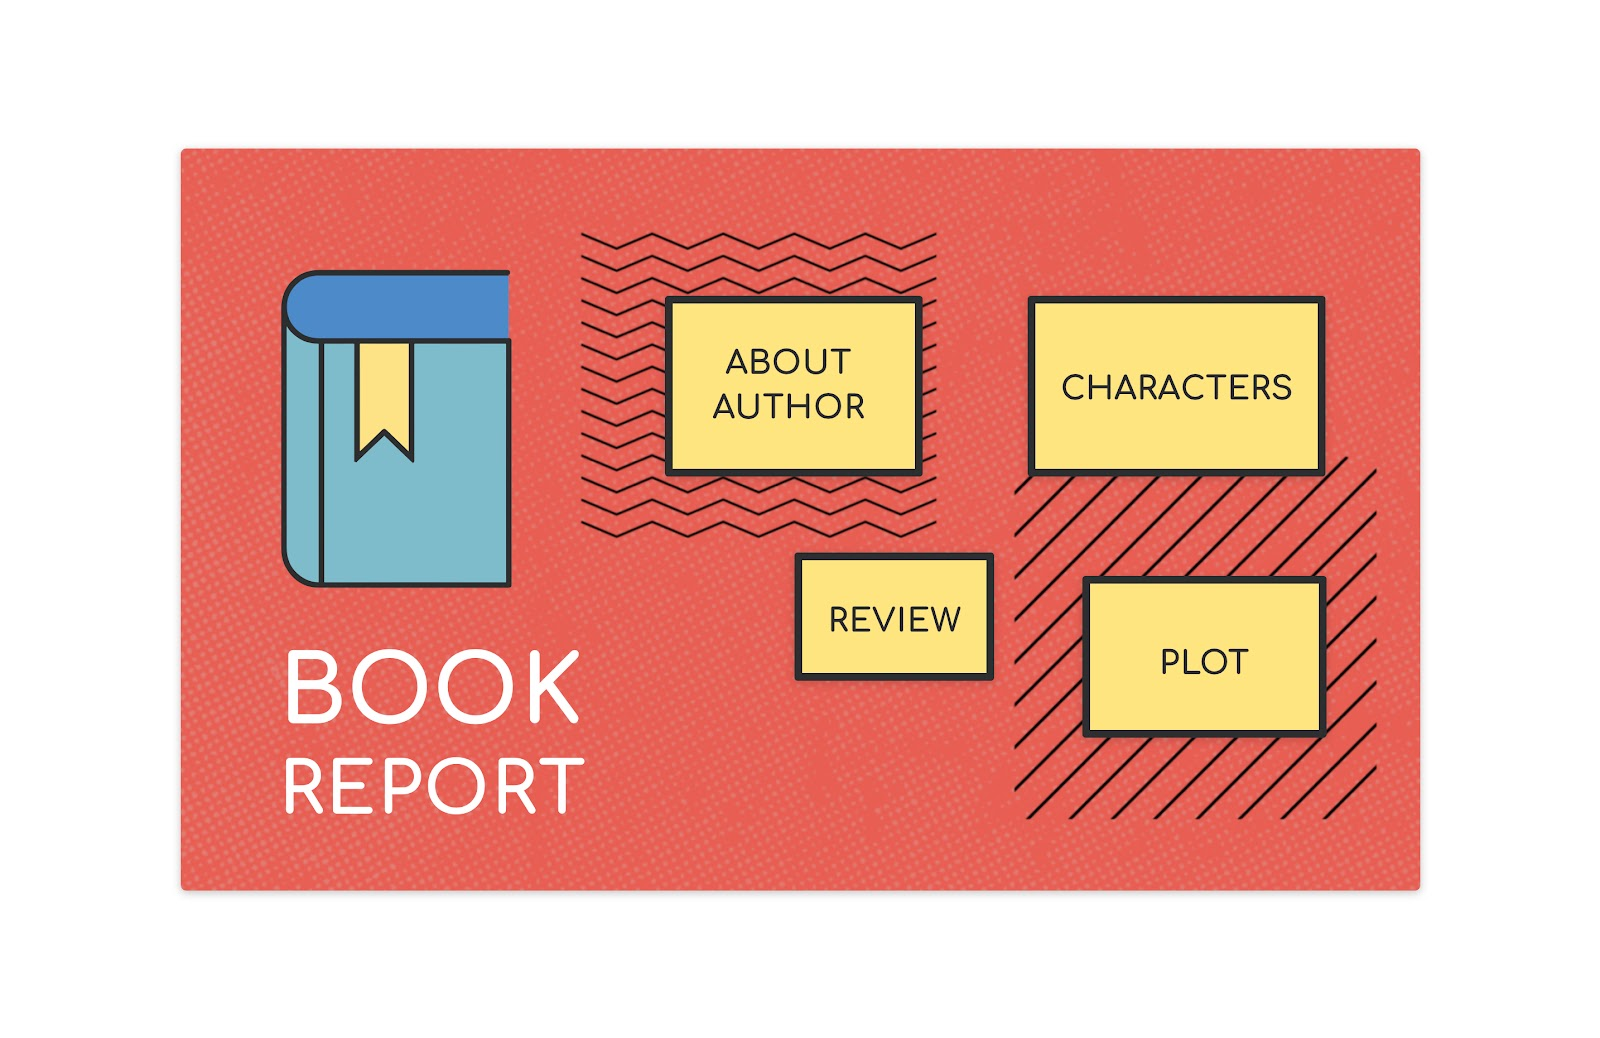 See how you can turn book reports into fun presentations.